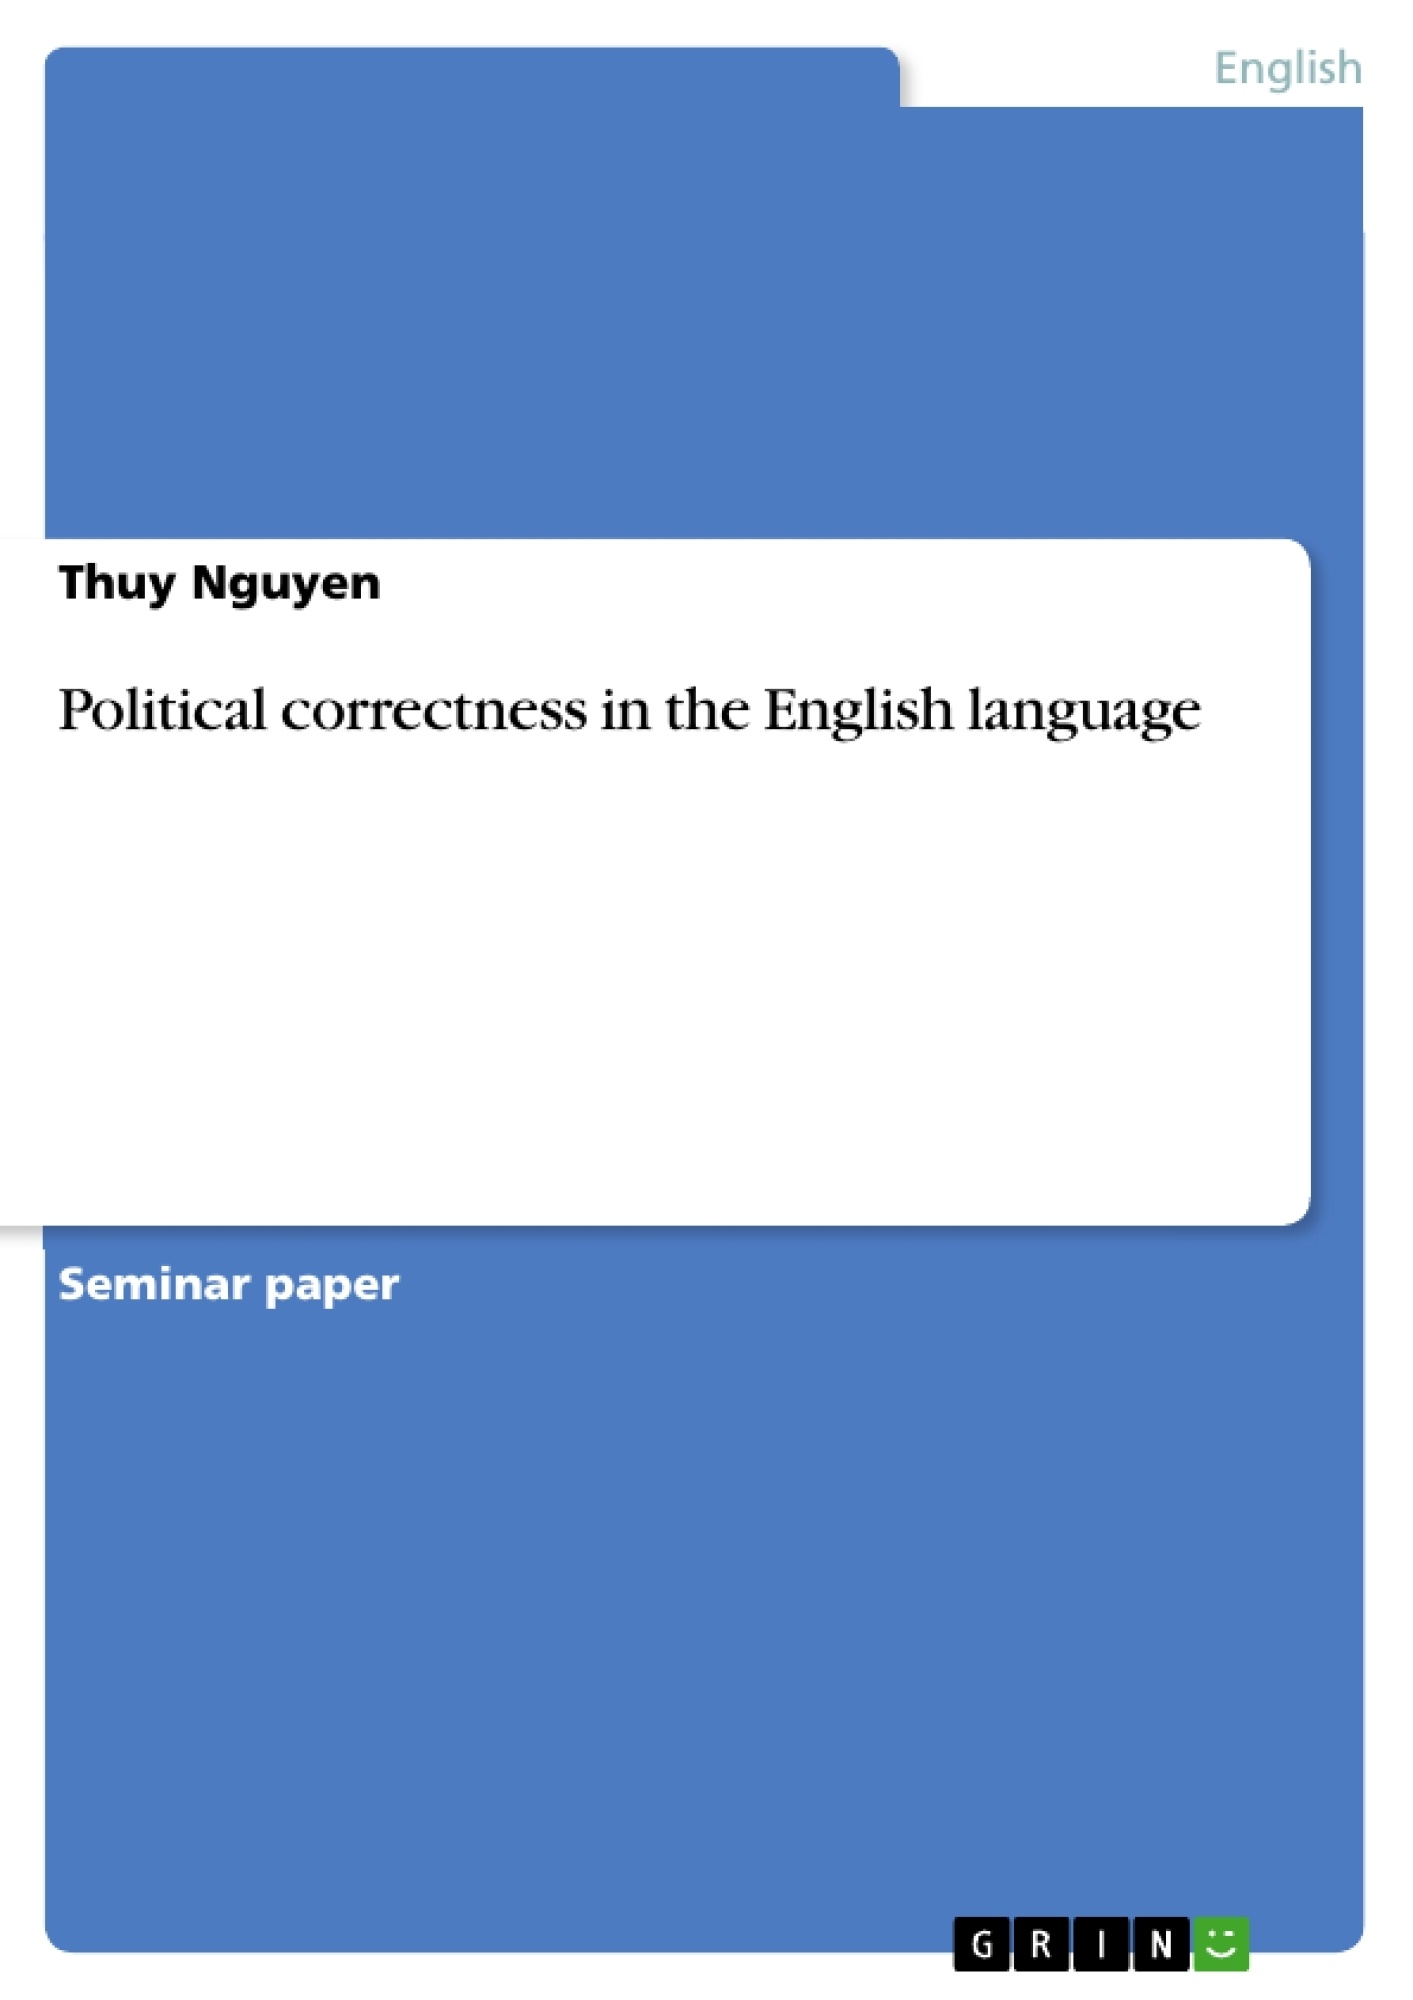 Title: Political correctness in the English language